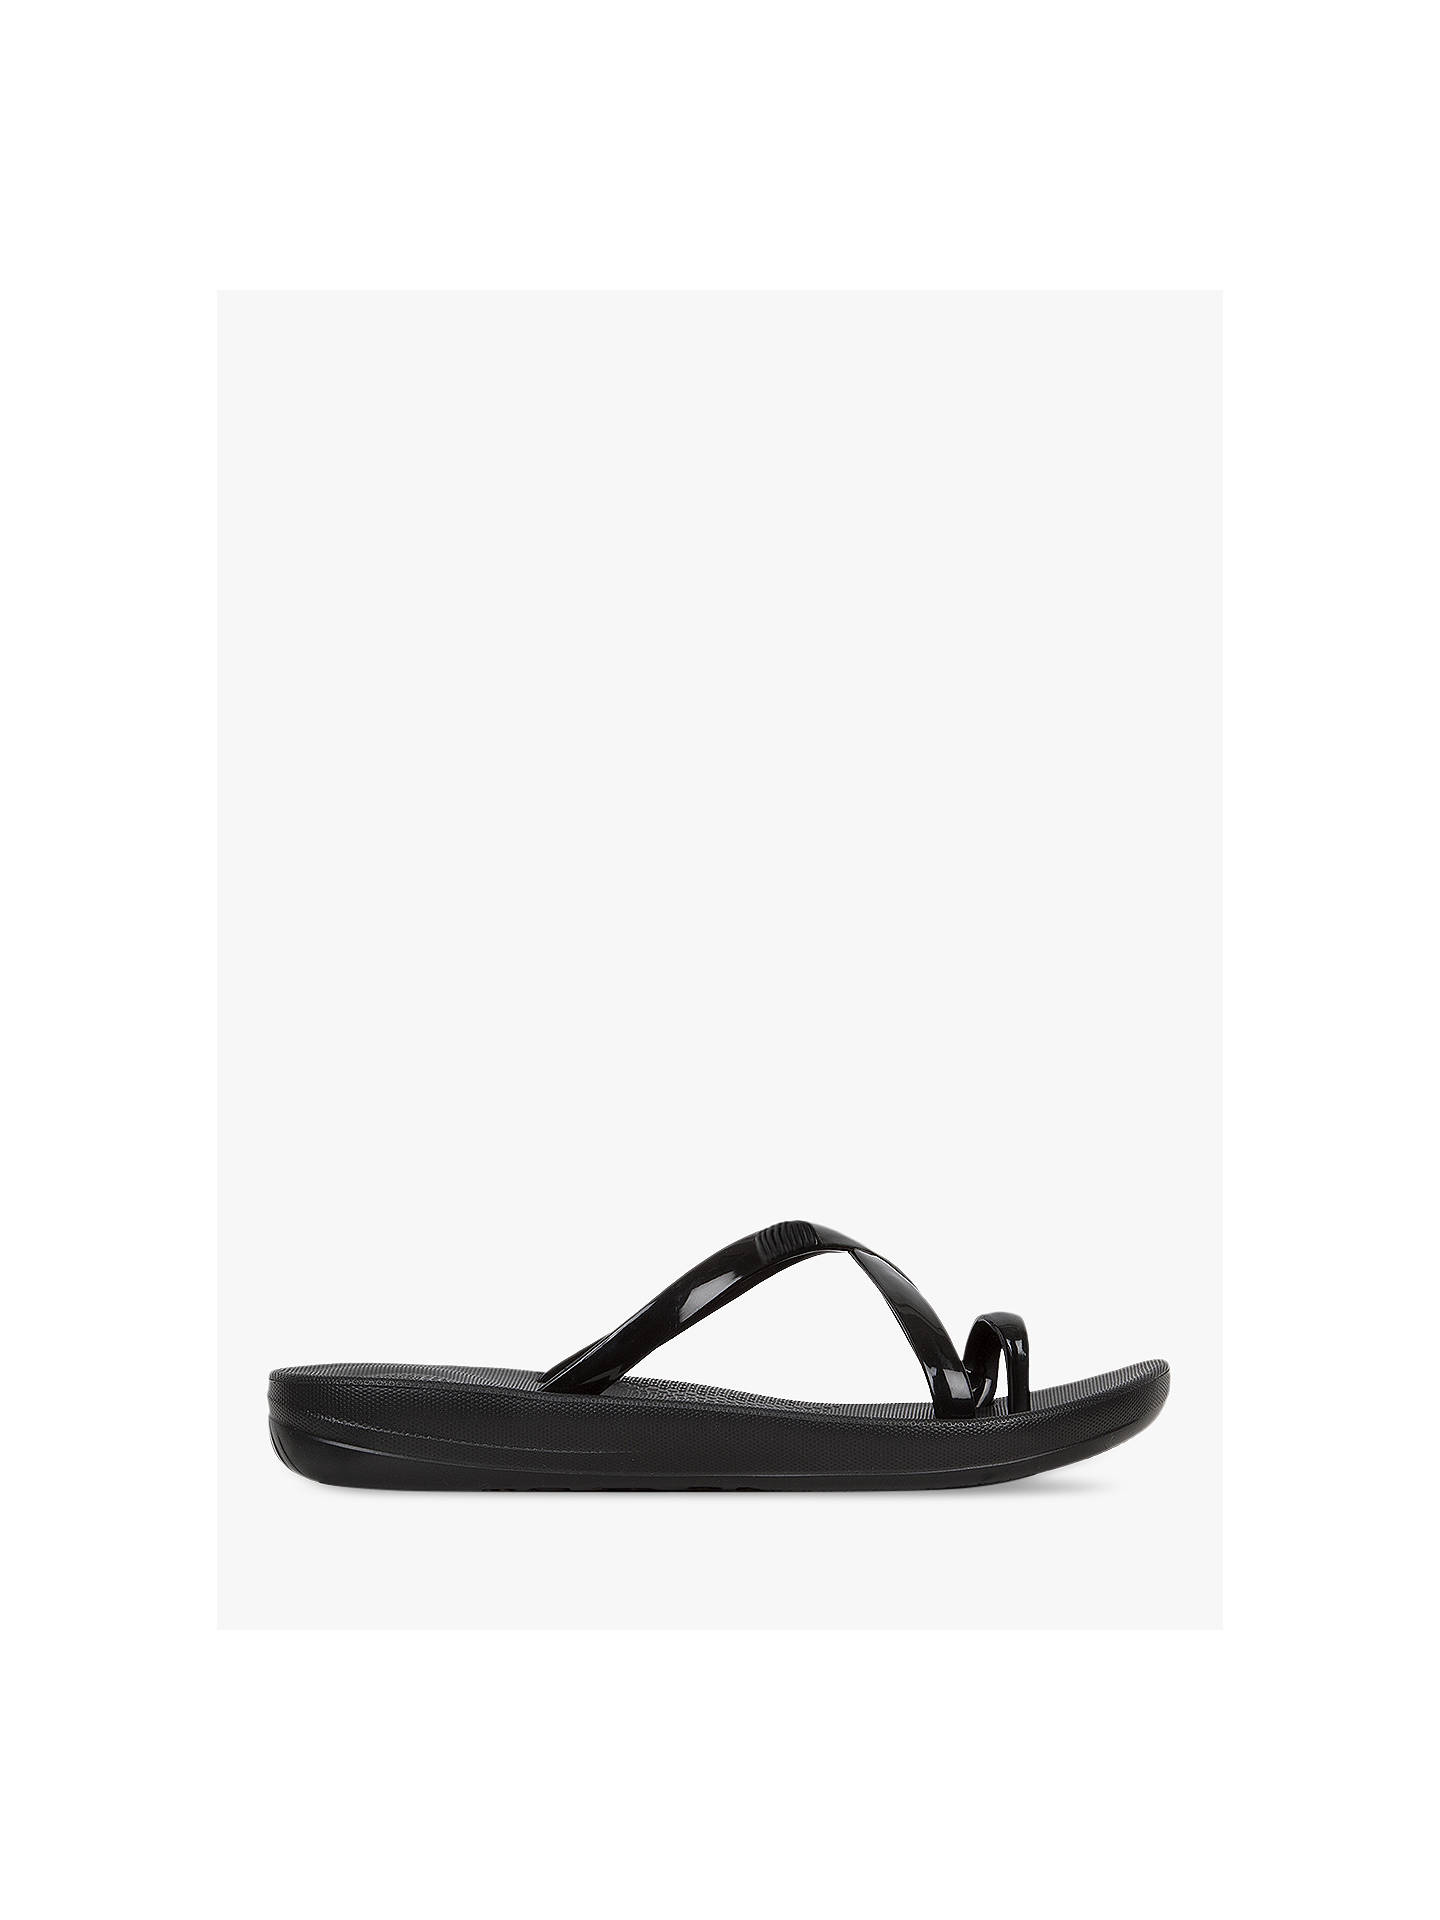 54468adab86d21 FitFlop Iqushion Wave Slide Sandals at John Lewis   Partners